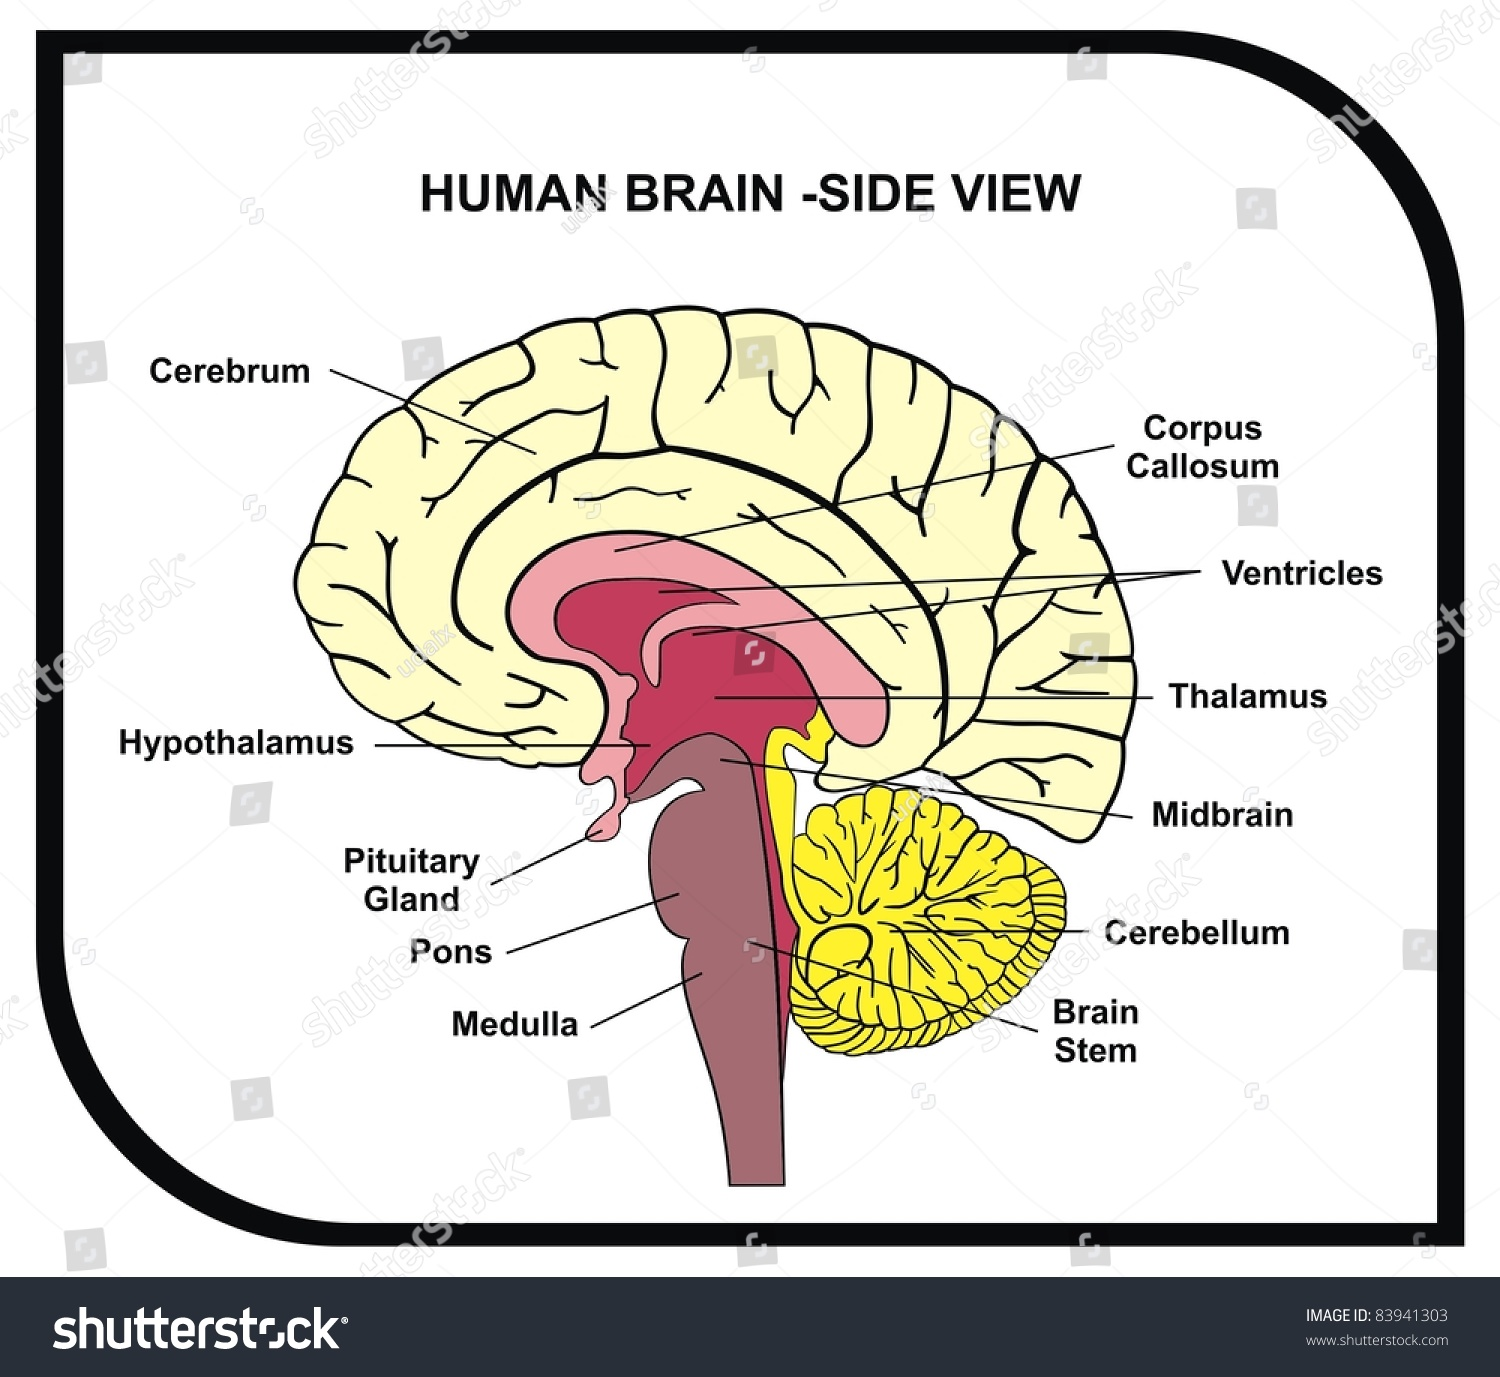 Human Brain Diagram Side View Parts Stock Photo (Safe to Use ...